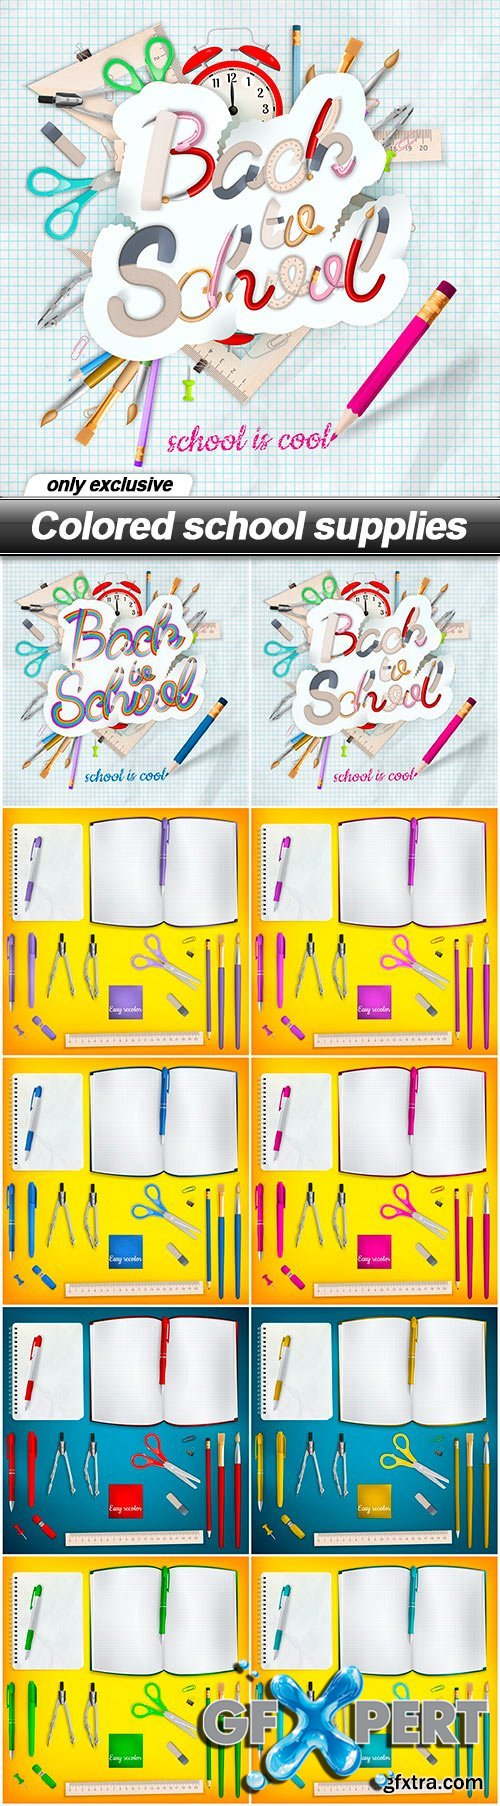 Colored school supplies - 10 EPS